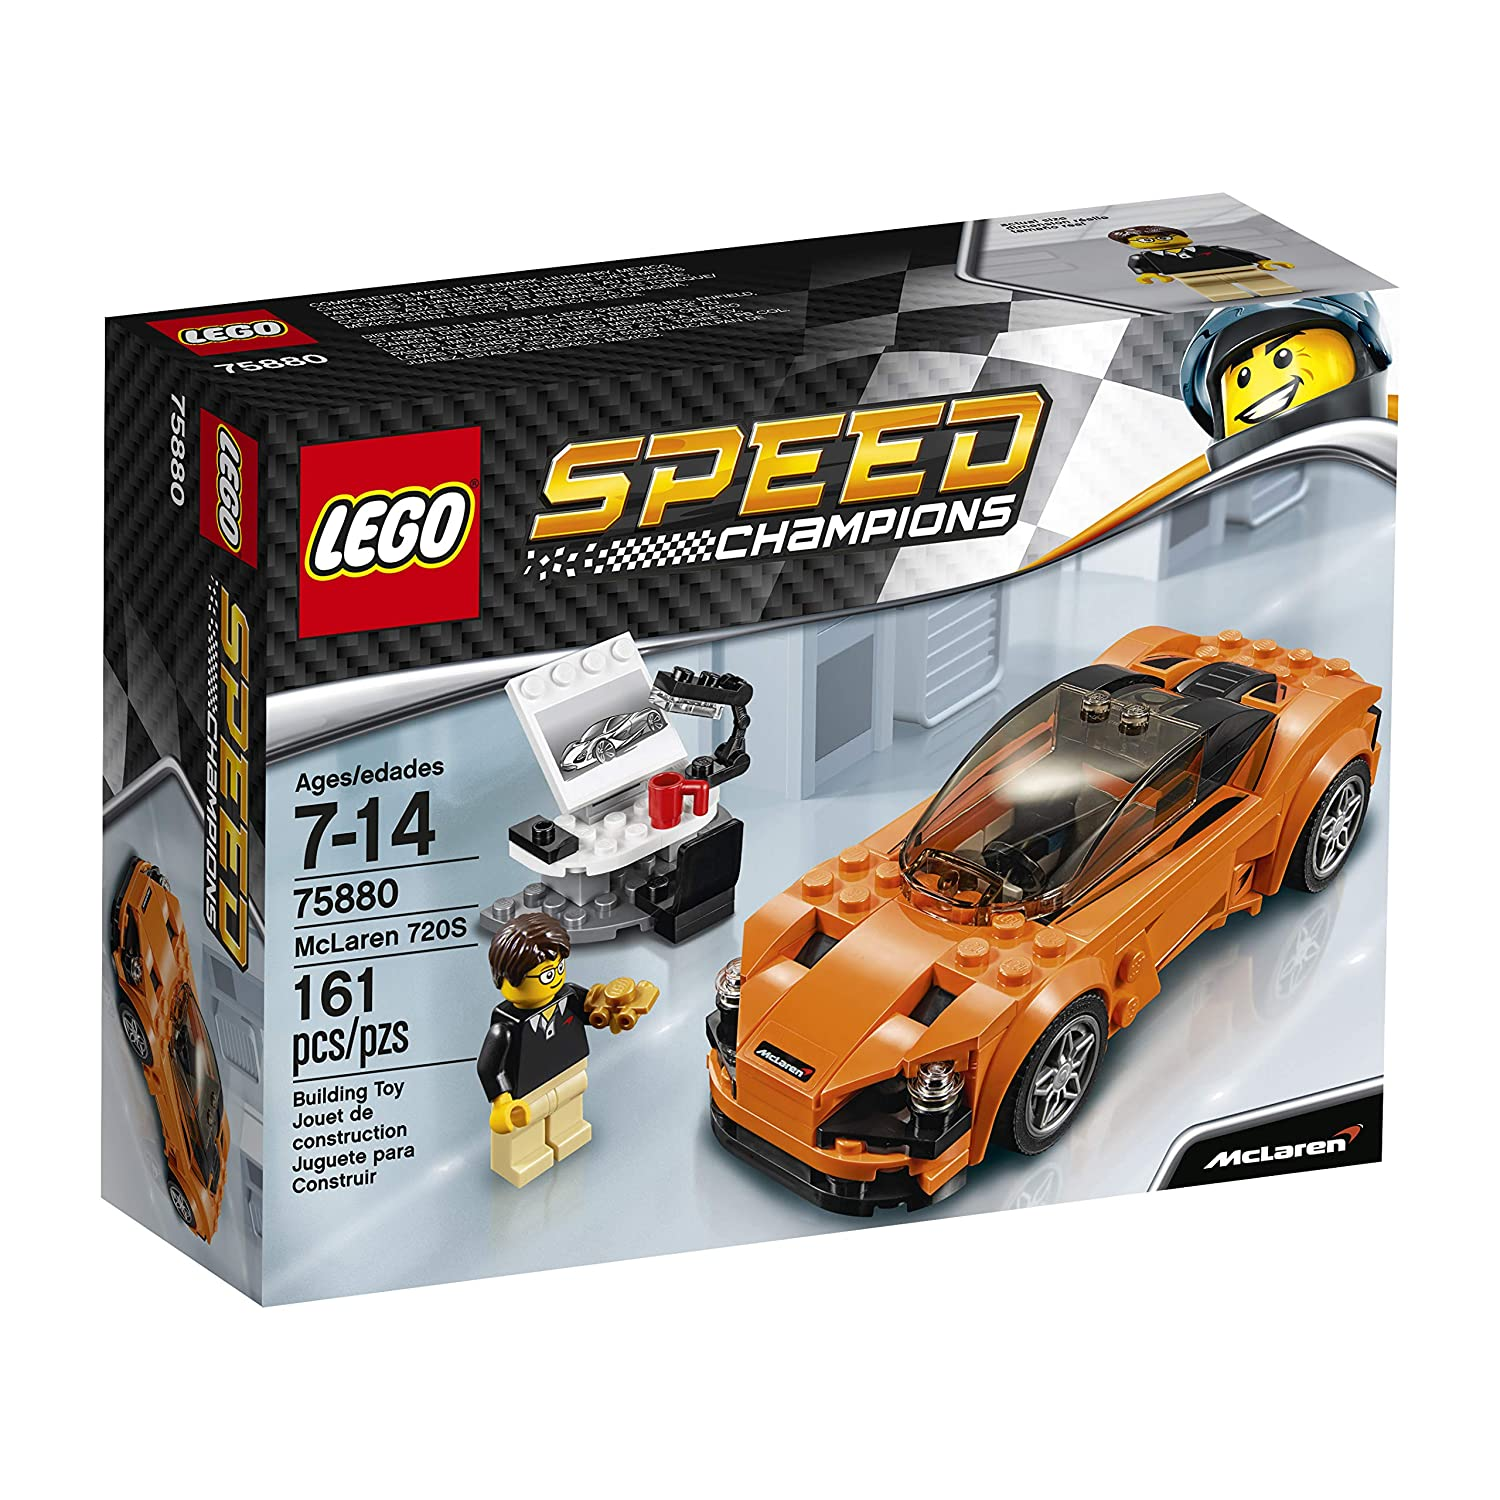 LEGO Speed Champions - McLaren 720S - 75880 - Jeu de Construction 6175271